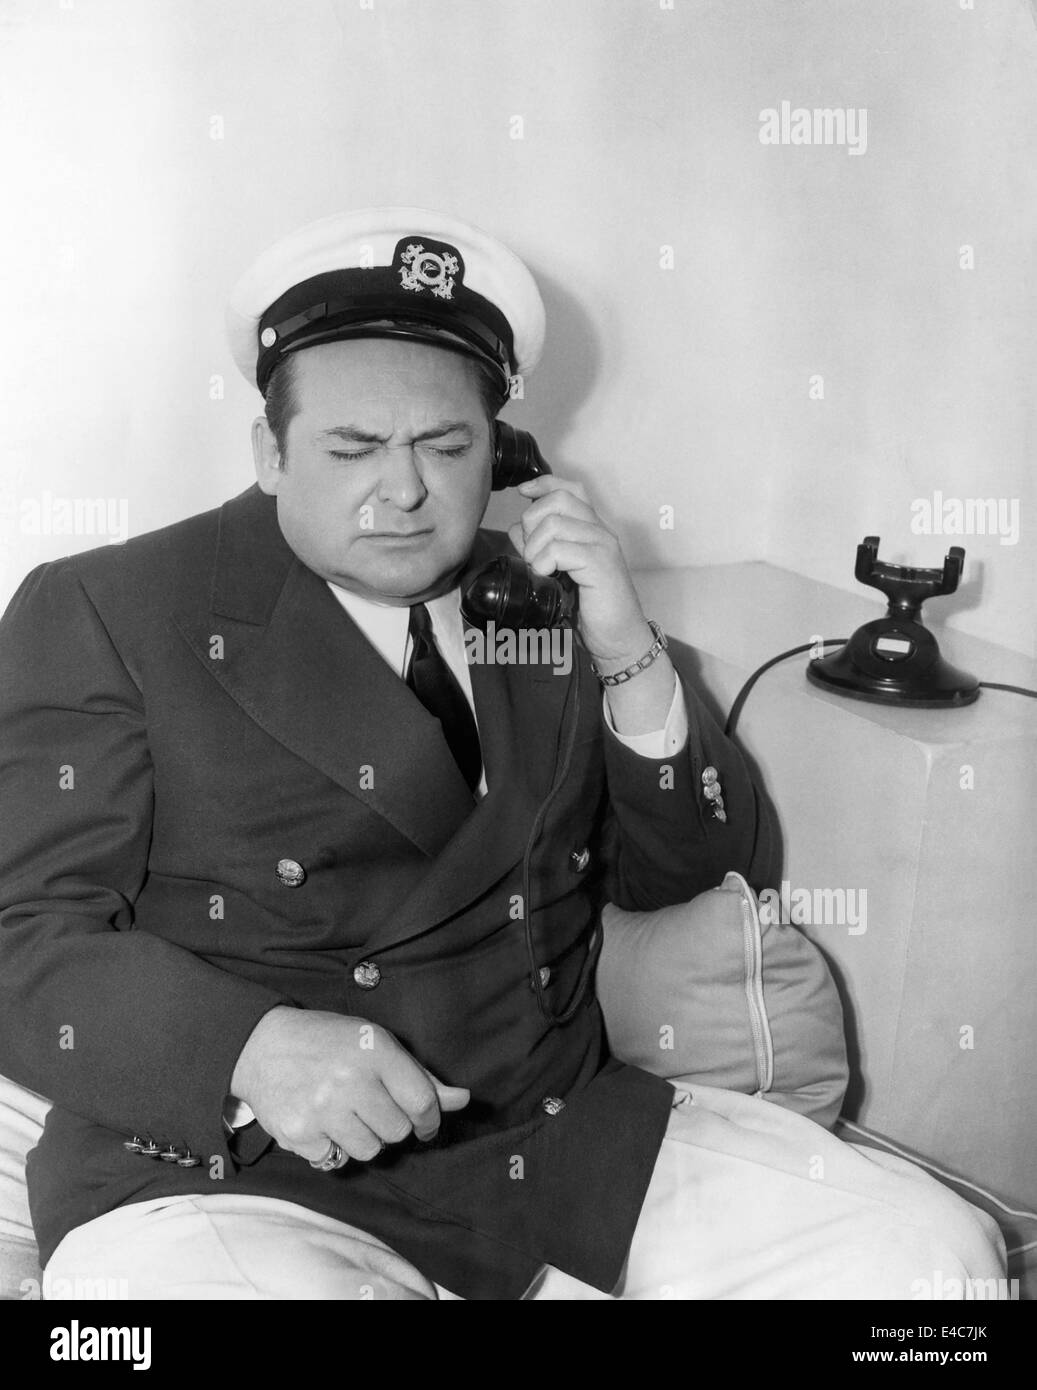 Edward Arnold, American Actor, Publicity Portrait, 1941 - Stock Image